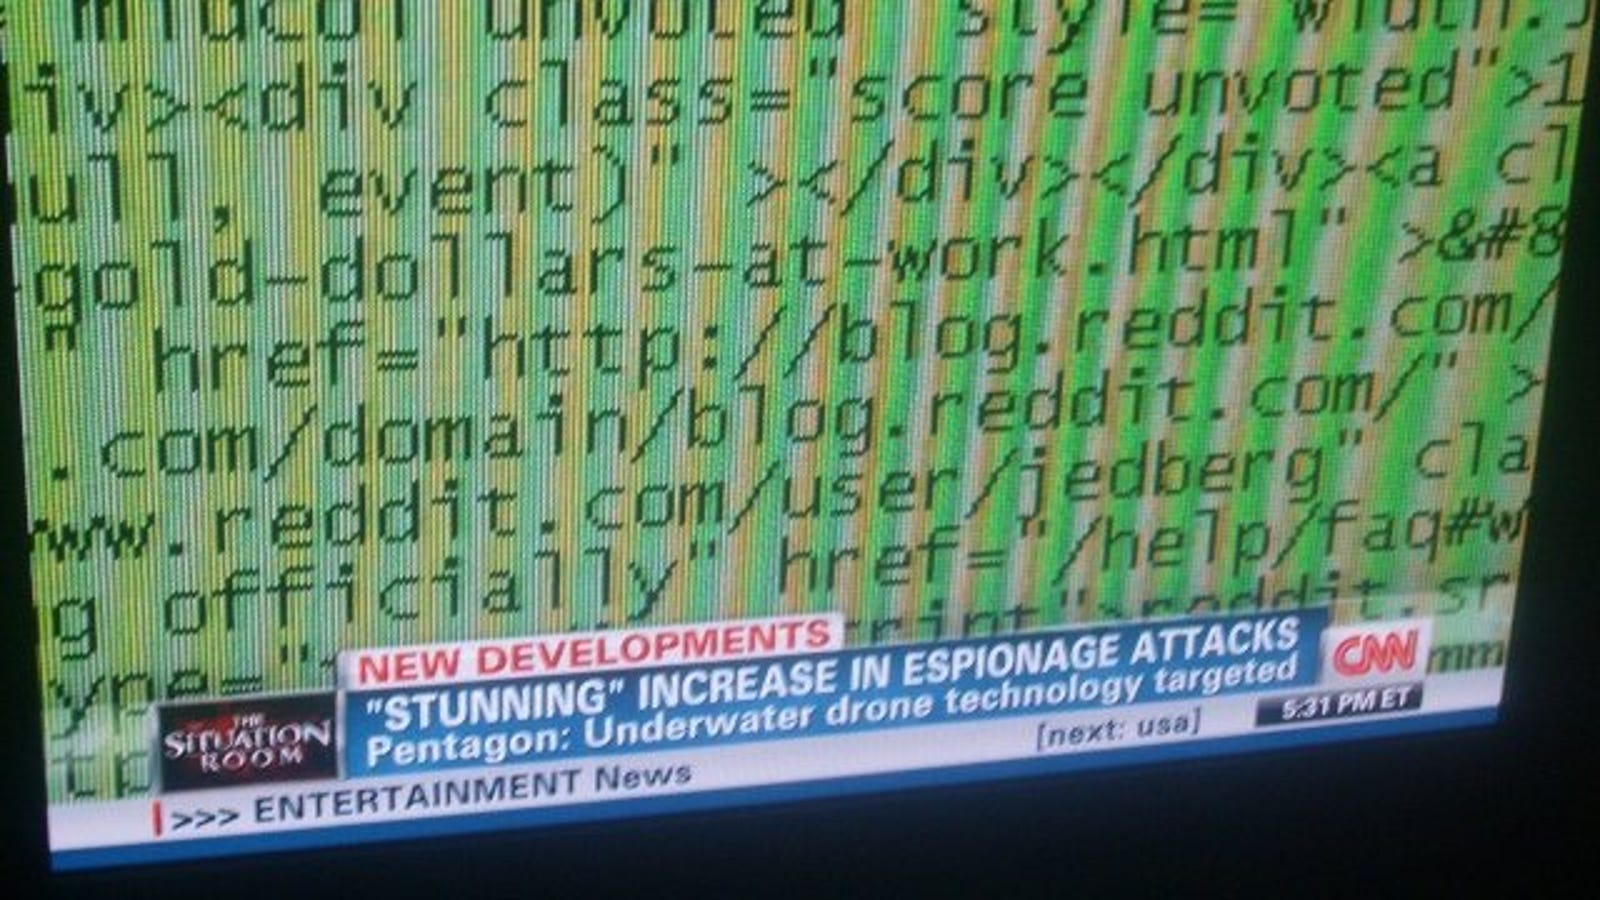 CNN Thinks HTML Is Computer Espionage